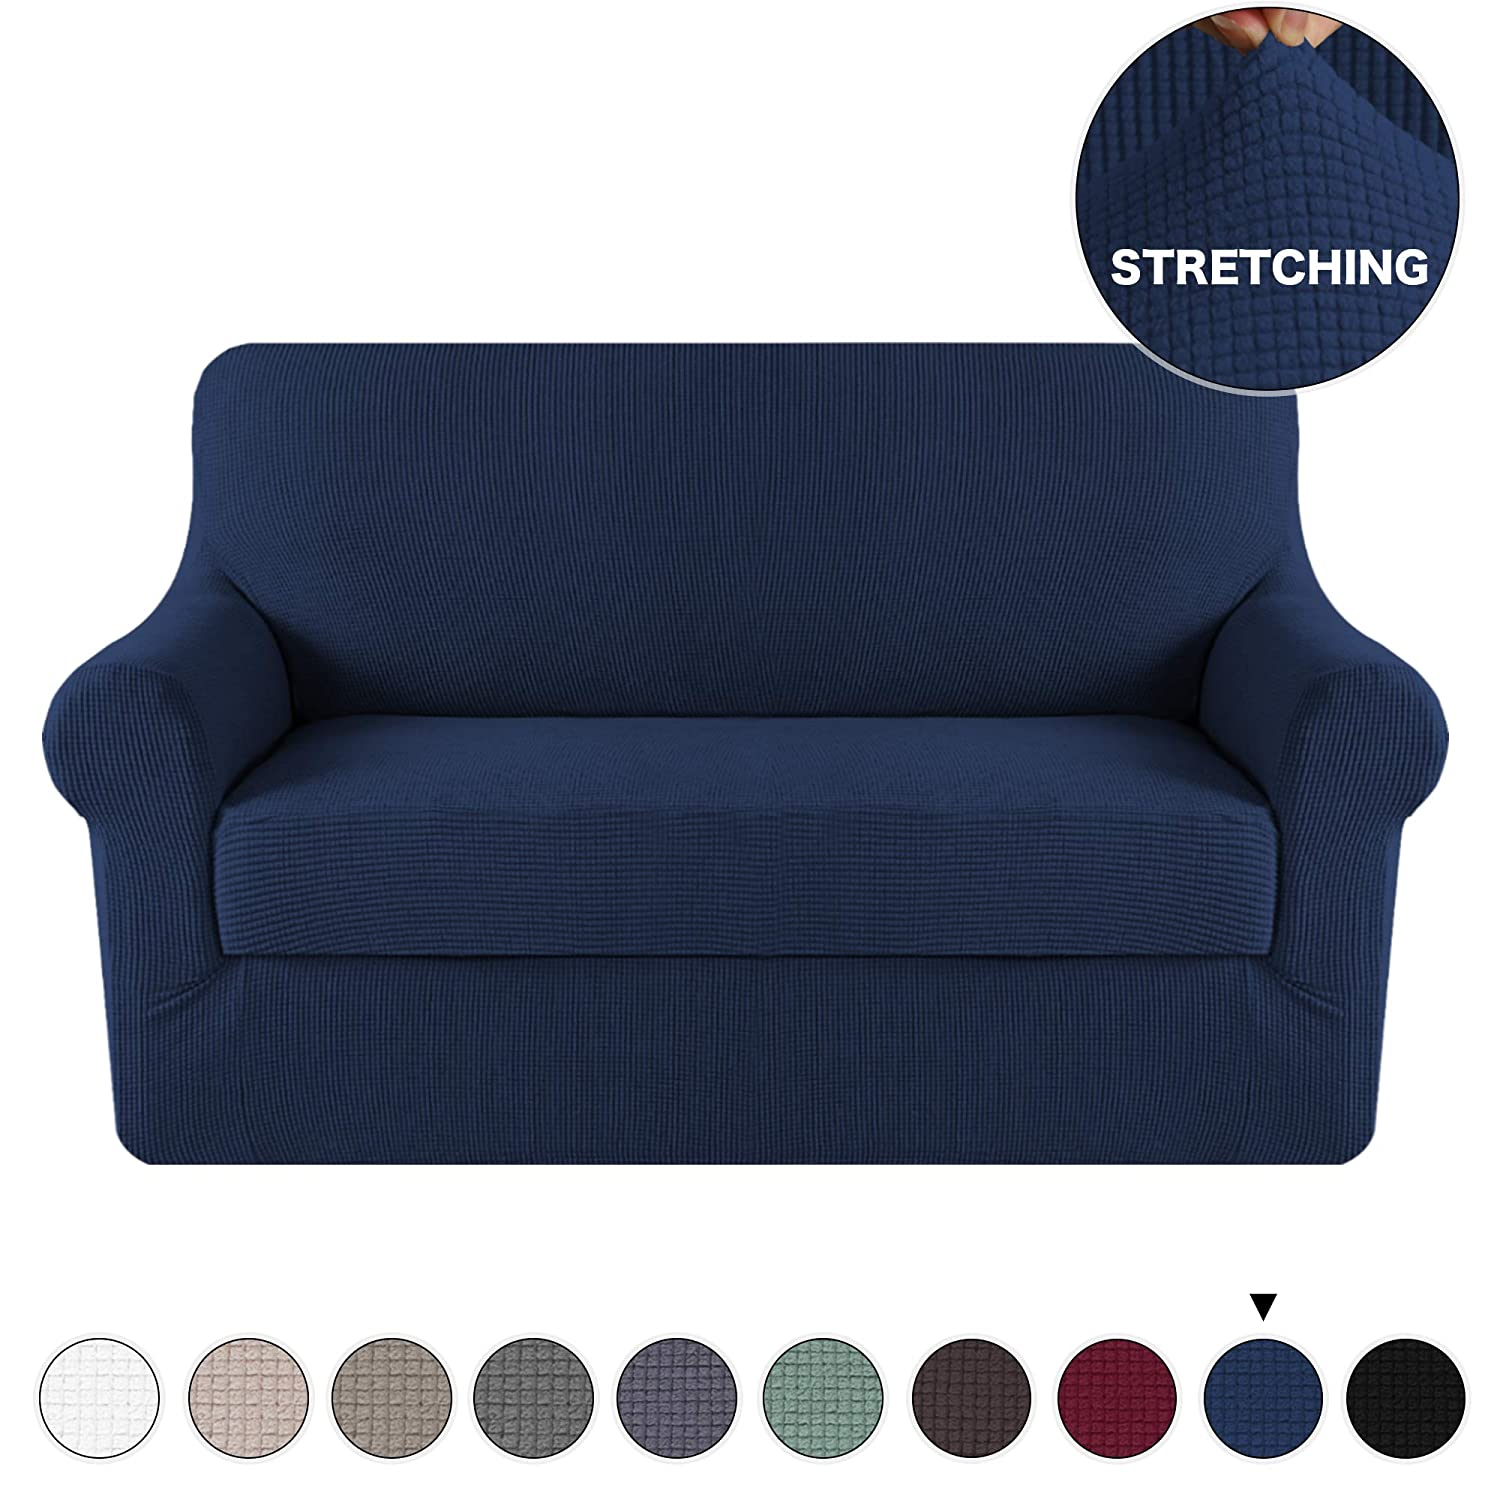 2 Piece Navy Sofa Slipcover Stretch Loveseat Slipcover Furniture Protector  Sofa Cover, Spandex Stretch Fabric Super Soft Sofa Covers Anti-Slip Couch  ...